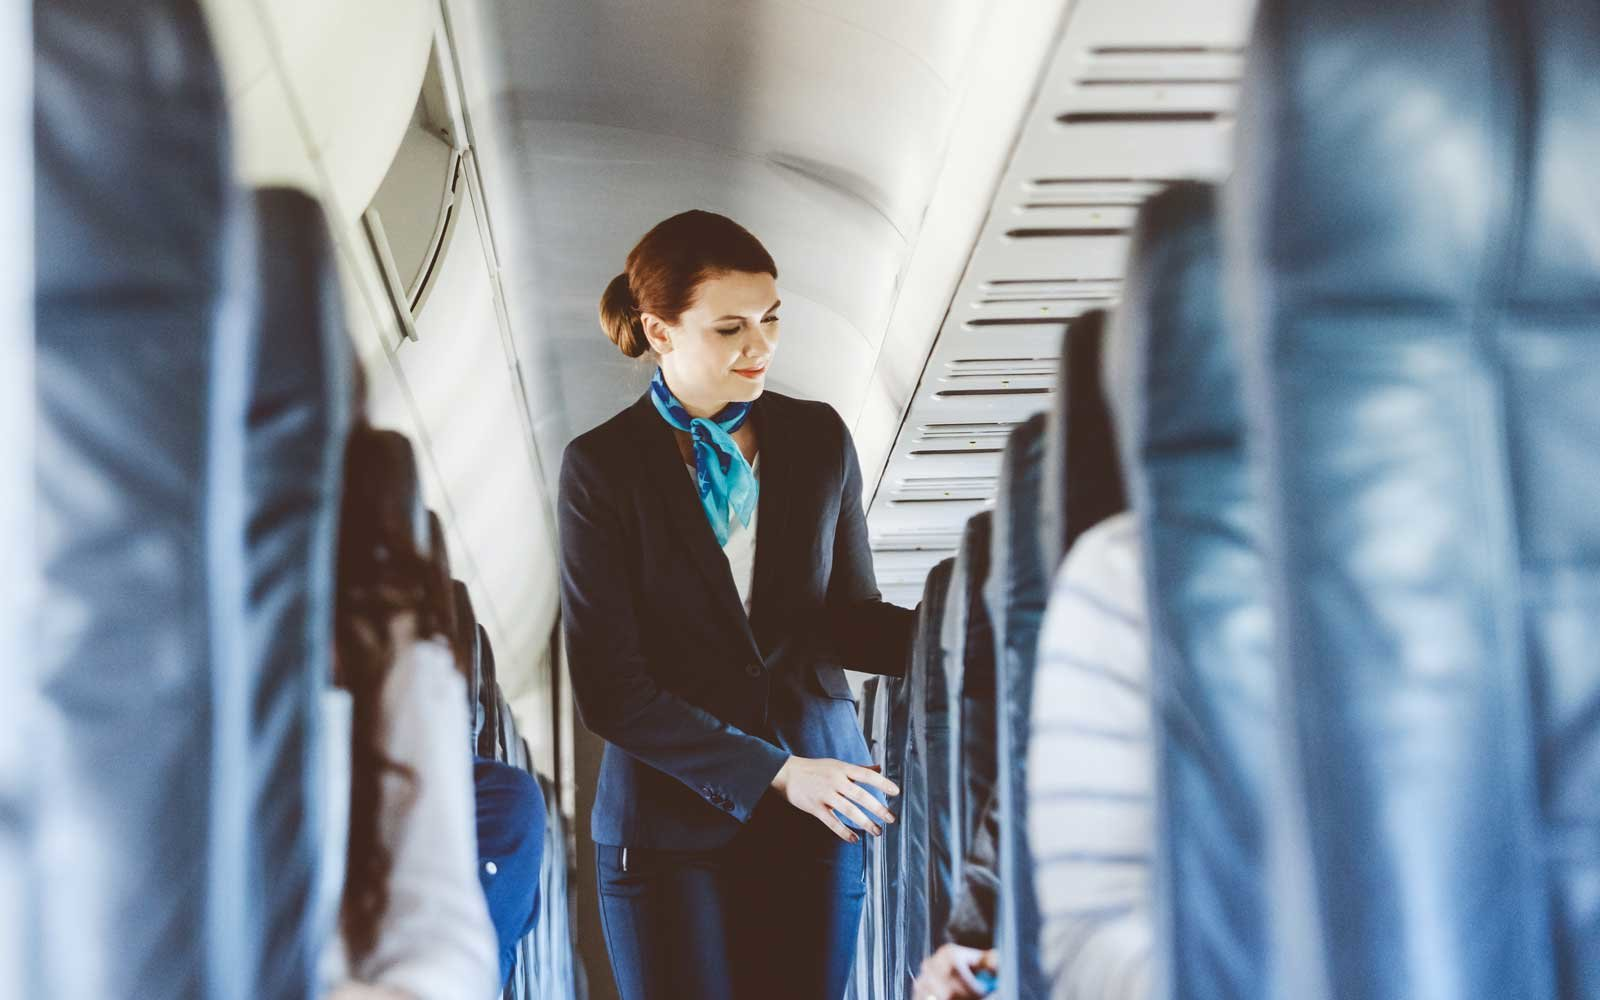 Should you tip your flight attendant?